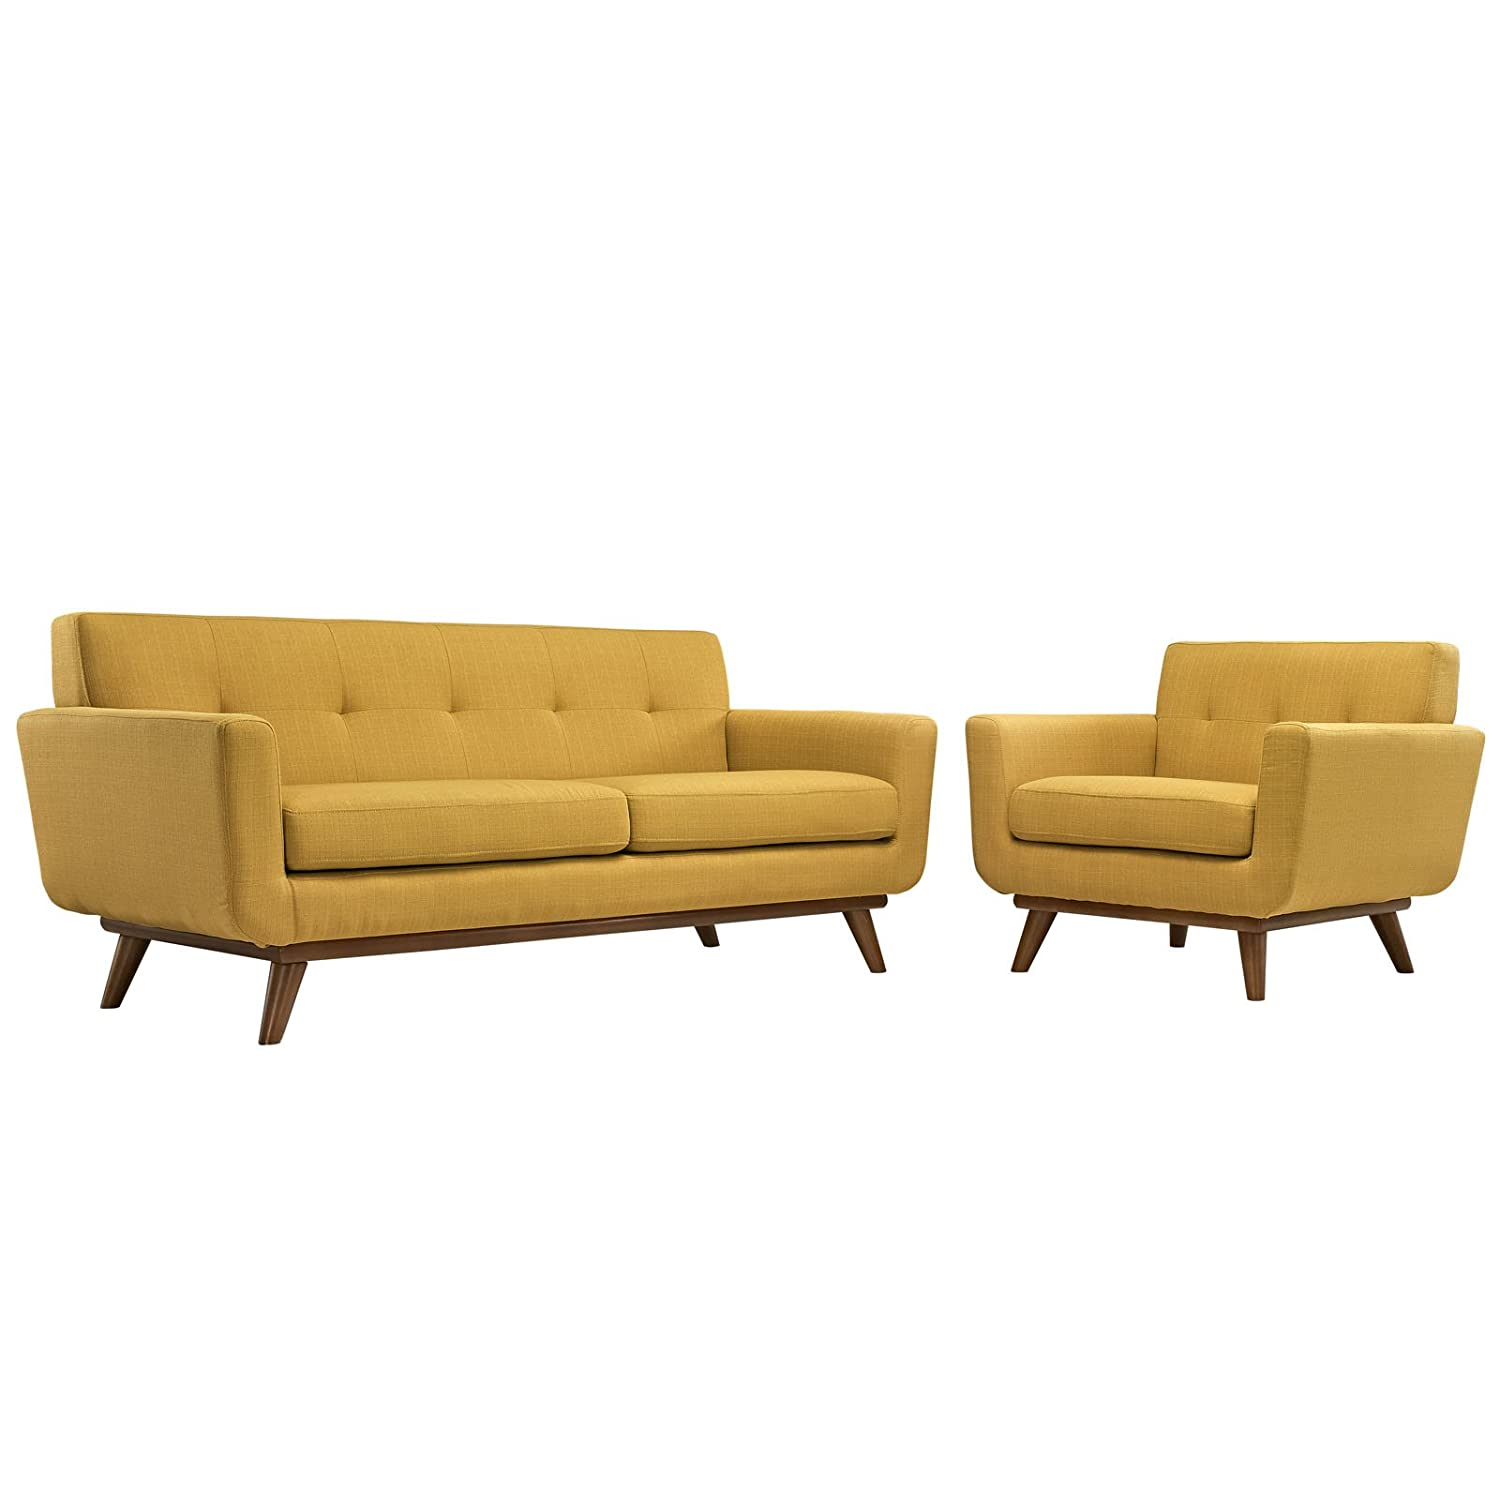 LexMod Engage Armchair and Loveseat - Citrus - Set of 2